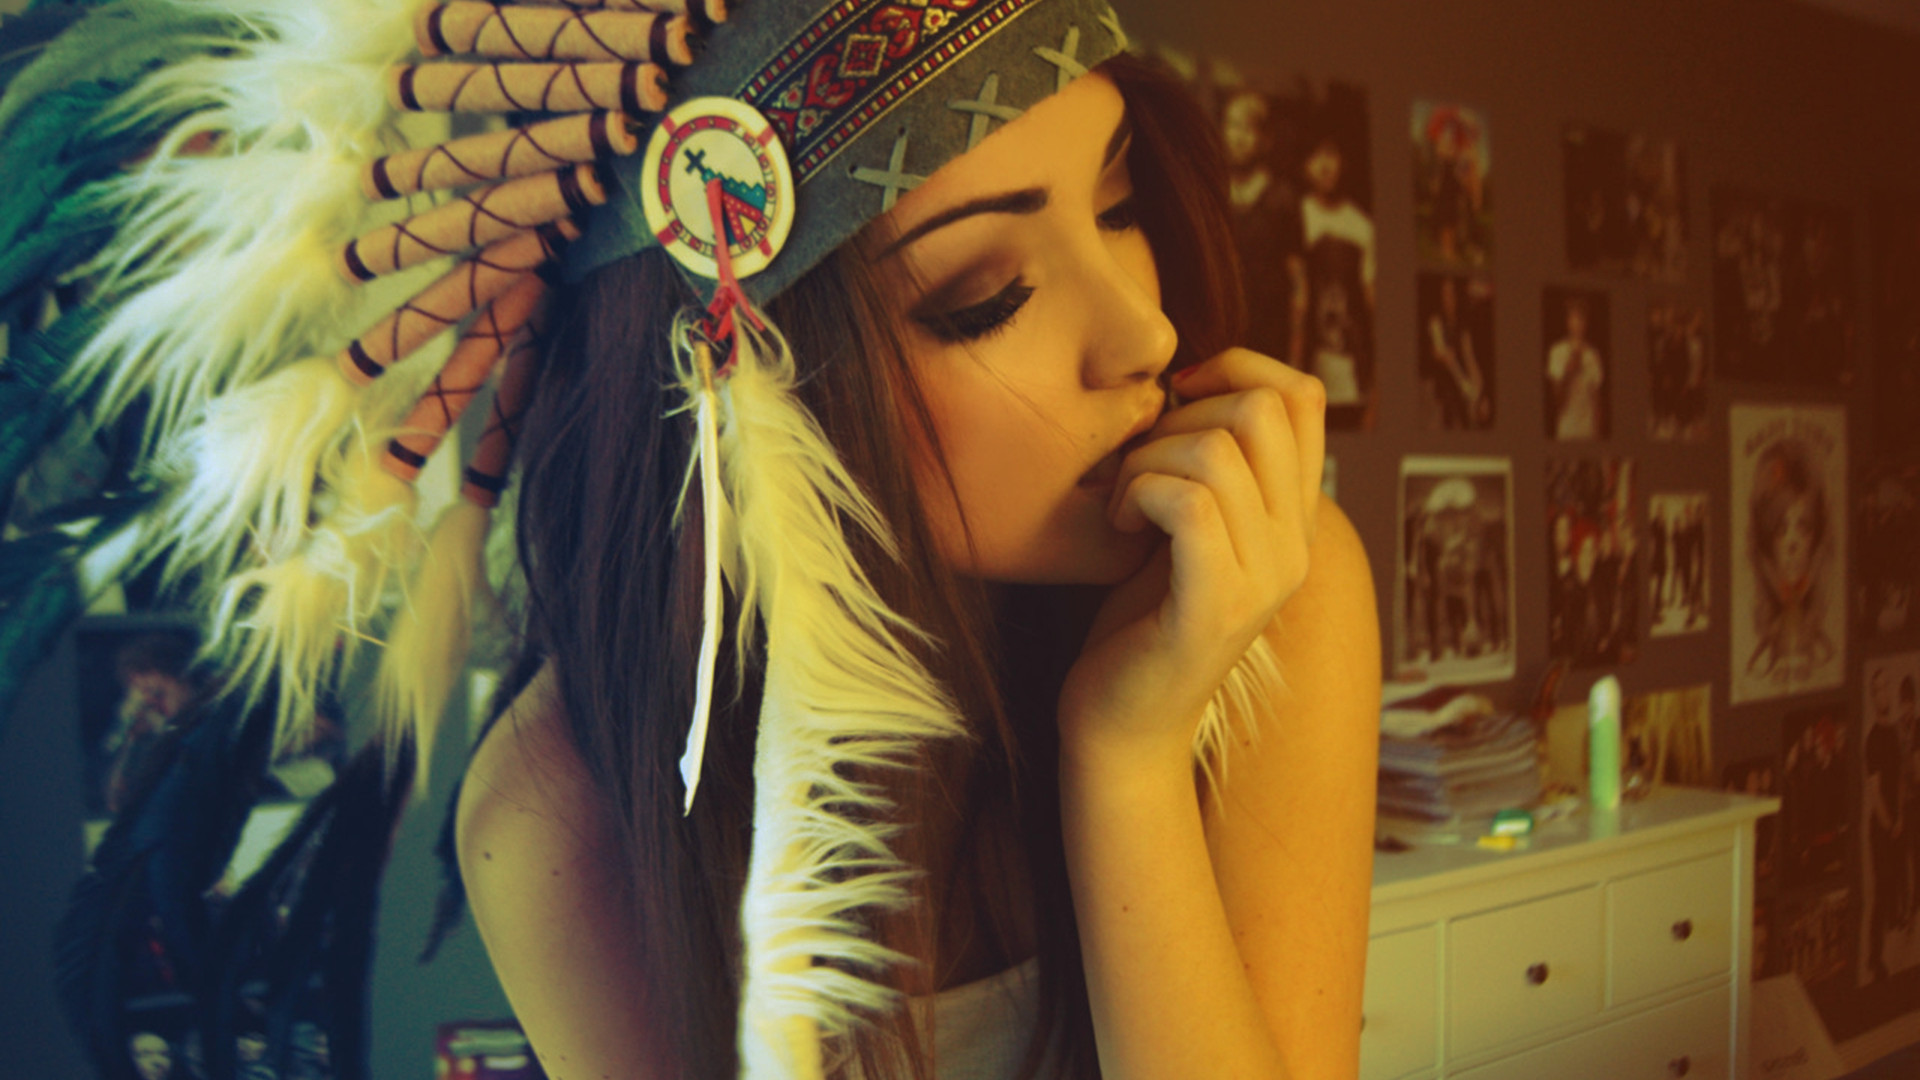 1920x1080 Pretty Boho/hippie girl with Native American/Indian headwrap (feathers)  with smokey eye and glowing skin